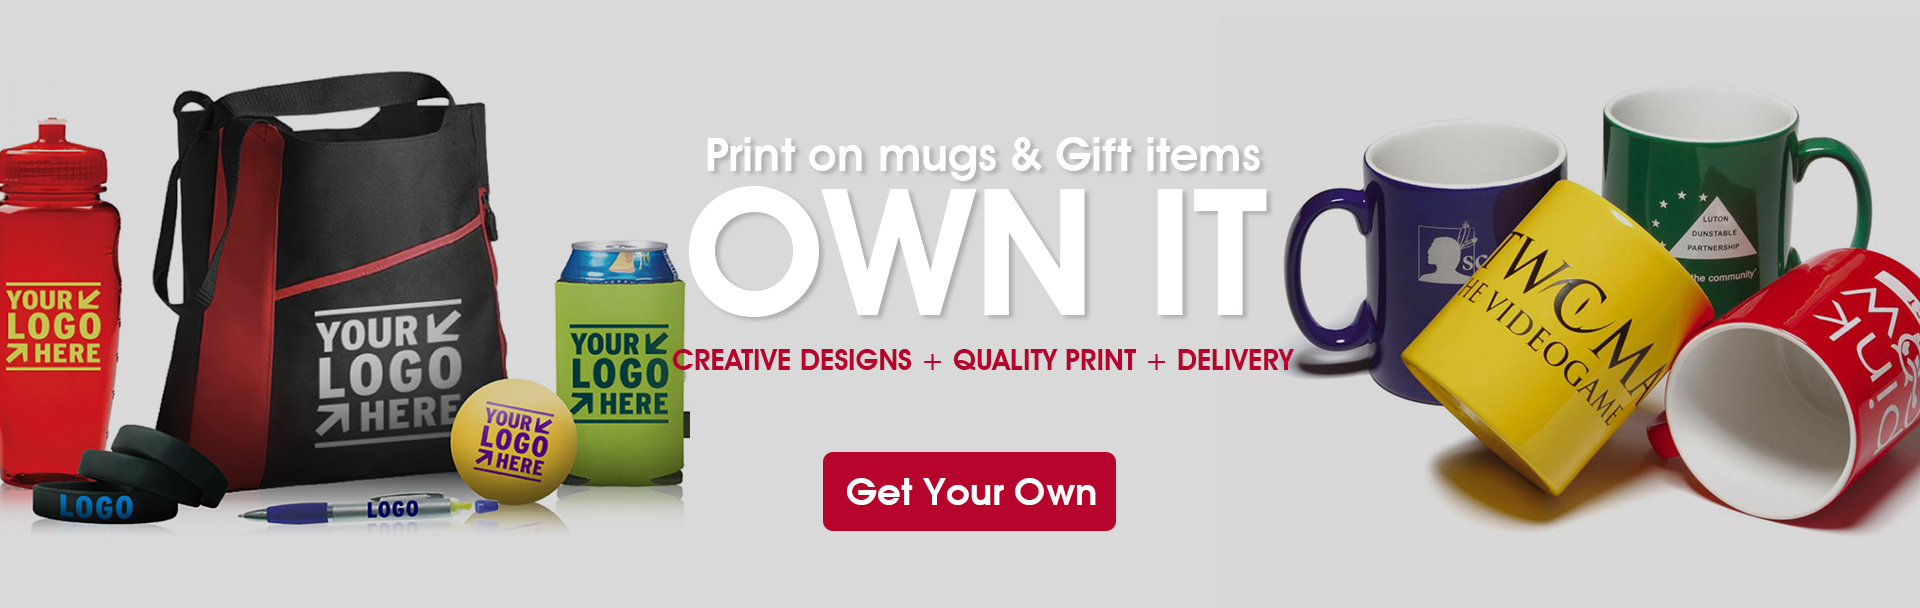 Corporate Gifts Printing in mitraon